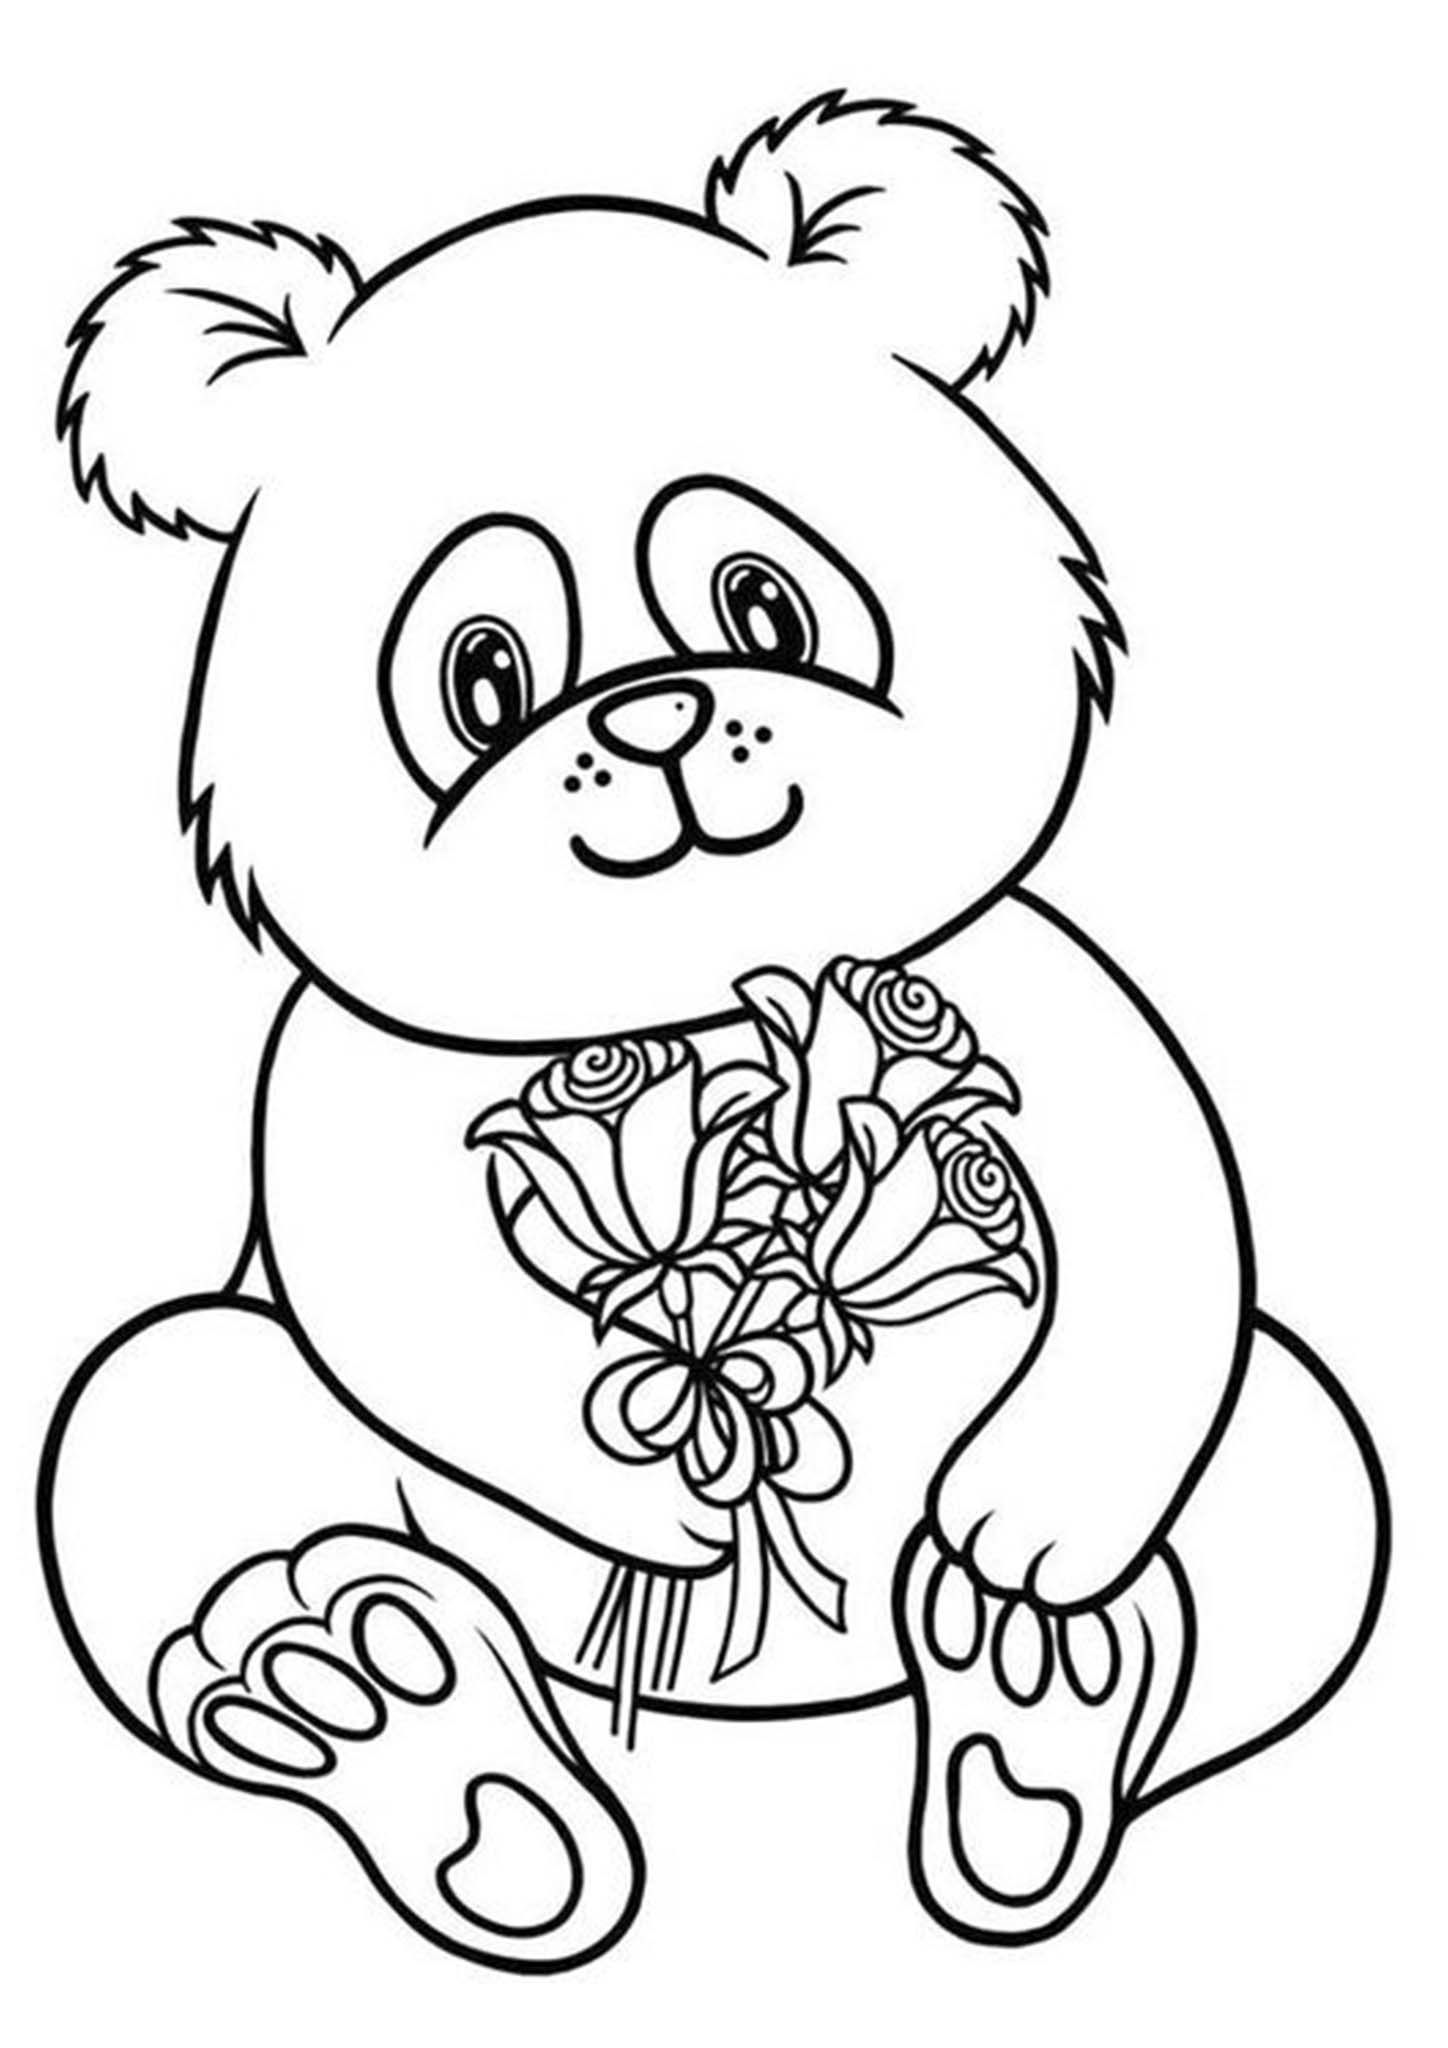 simple panda coloring pages free easy to print panda coloring pages in 2020 panda coloring pages panda simple